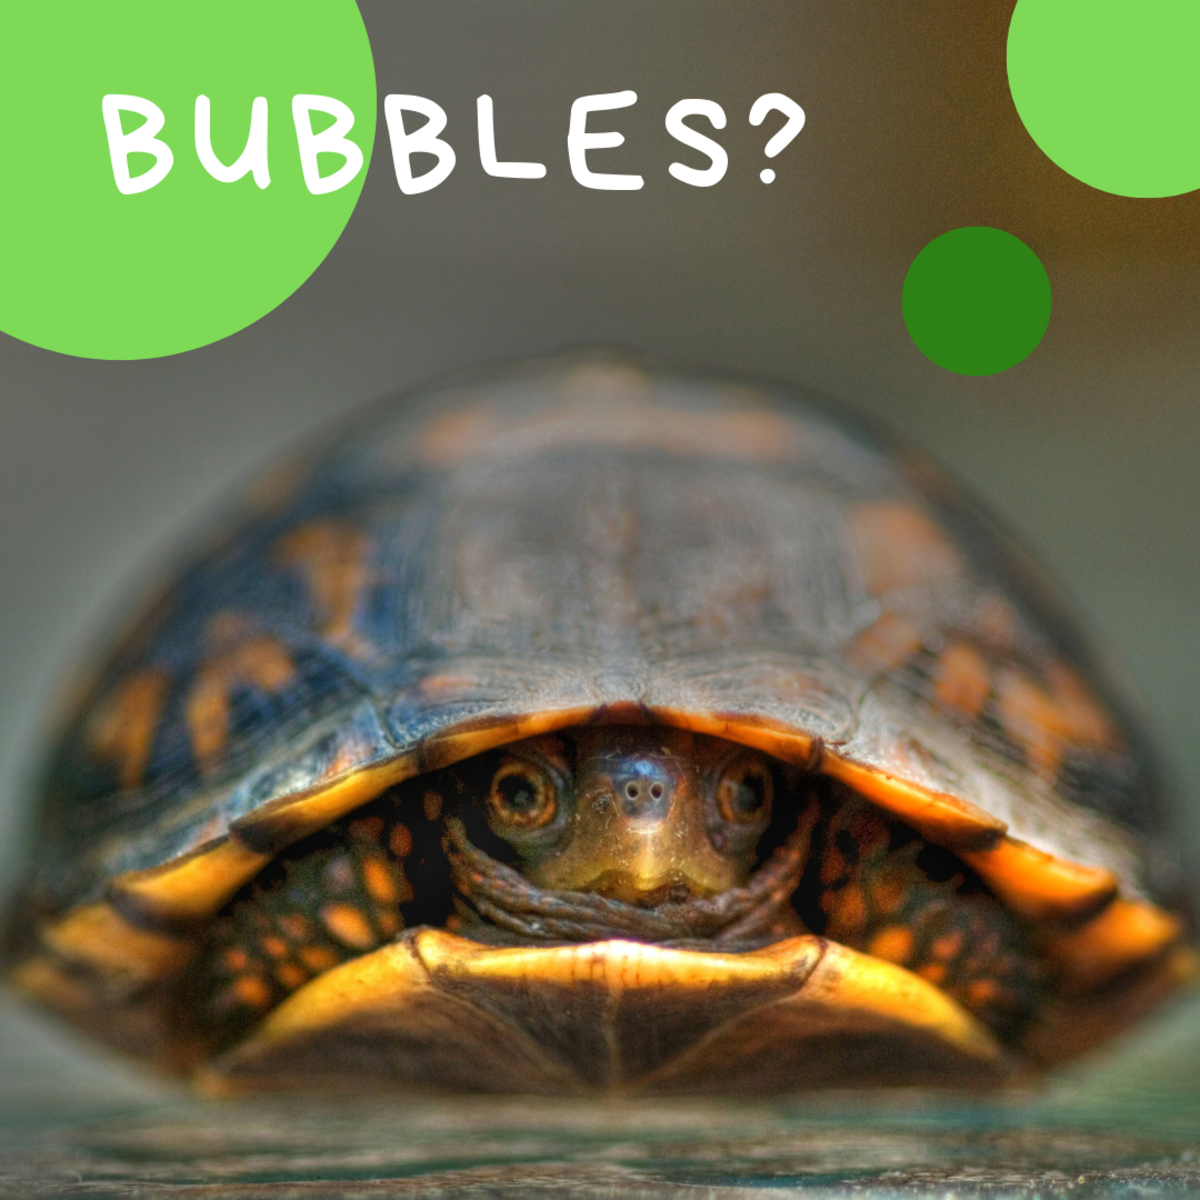 Is he or she a Bubbles?